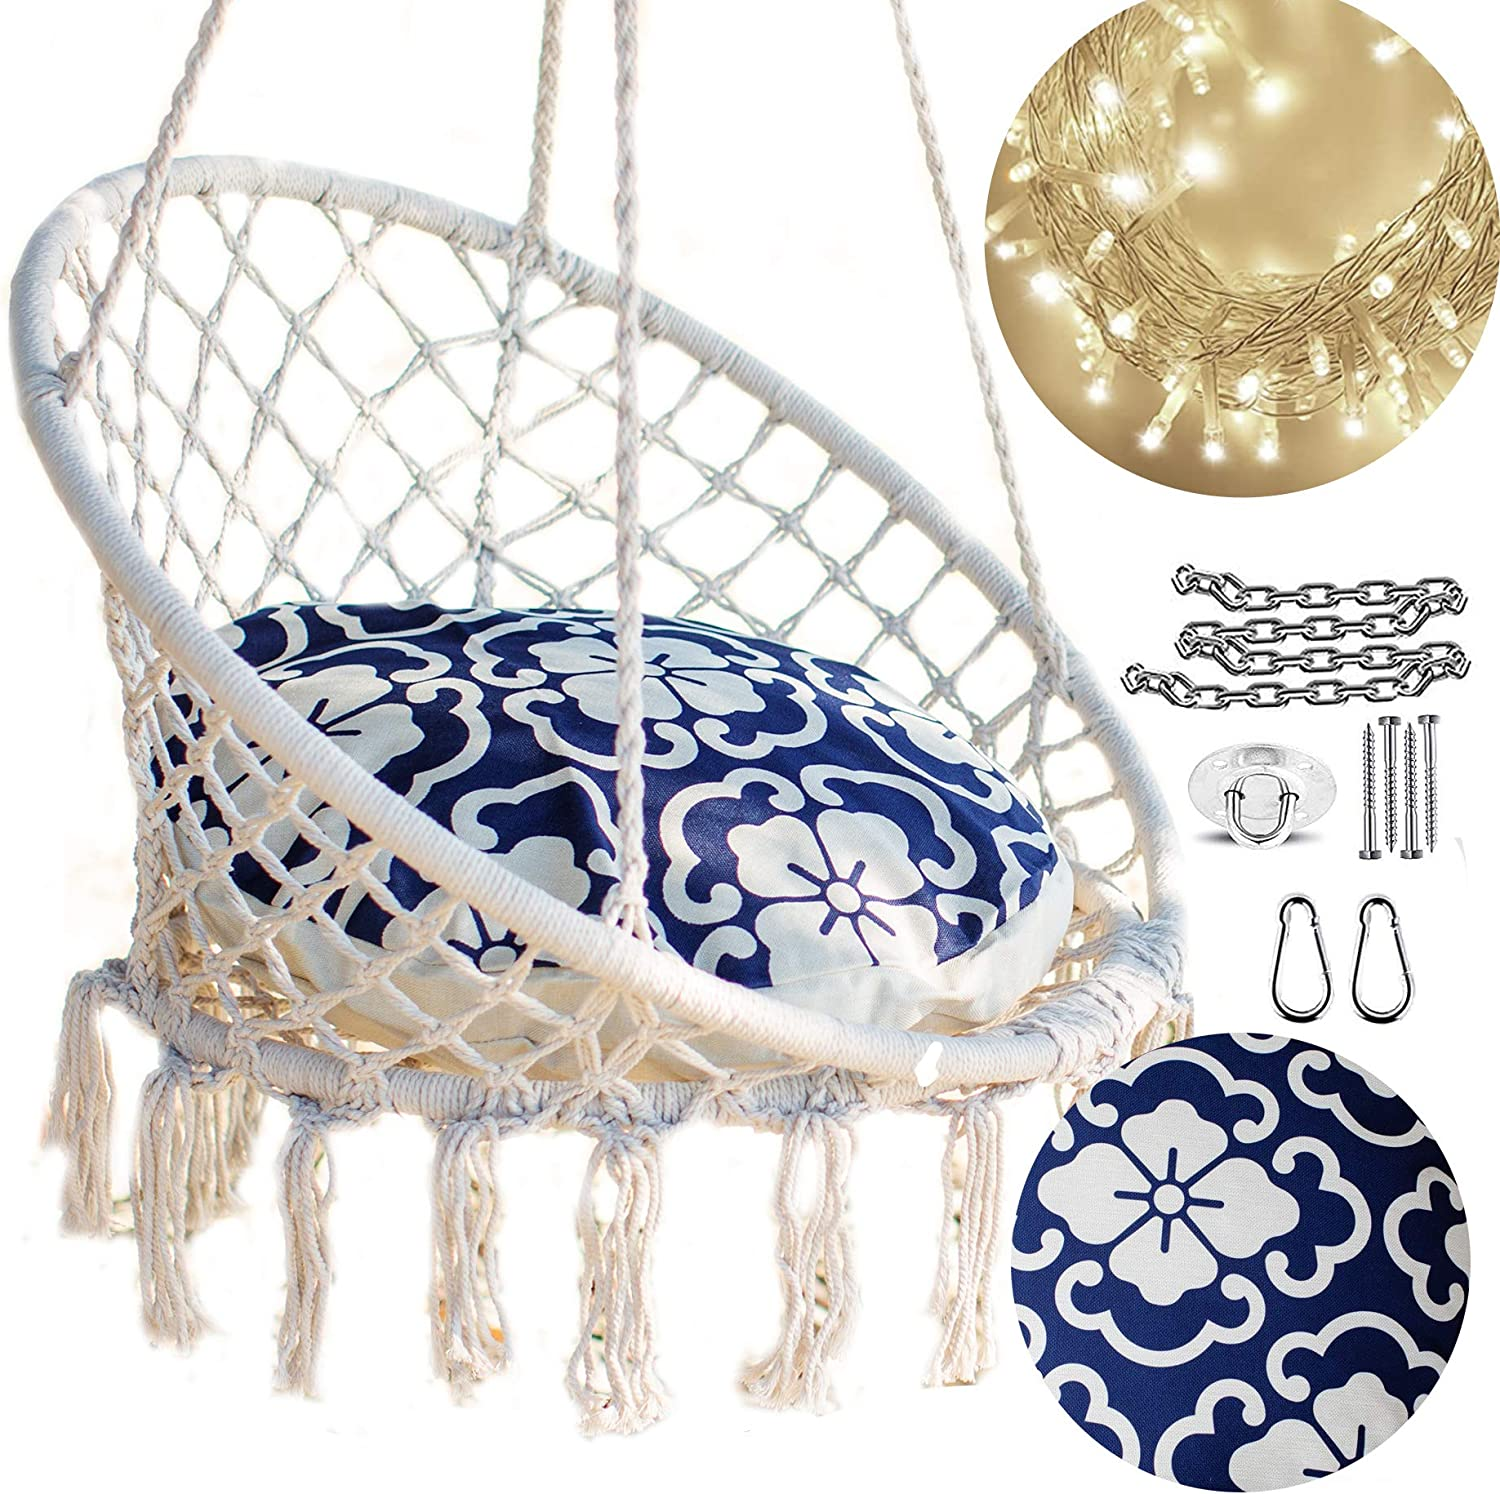 Amazon Com Nooksta Hanging Chairs For Bedrooms Macrame Swing Chair With Included Cushion For Hammock And Hanging Kit For Hammock Stand Tree Hammock Swing Indoor Hanging Chair Moroccan Blue Cushion Garden